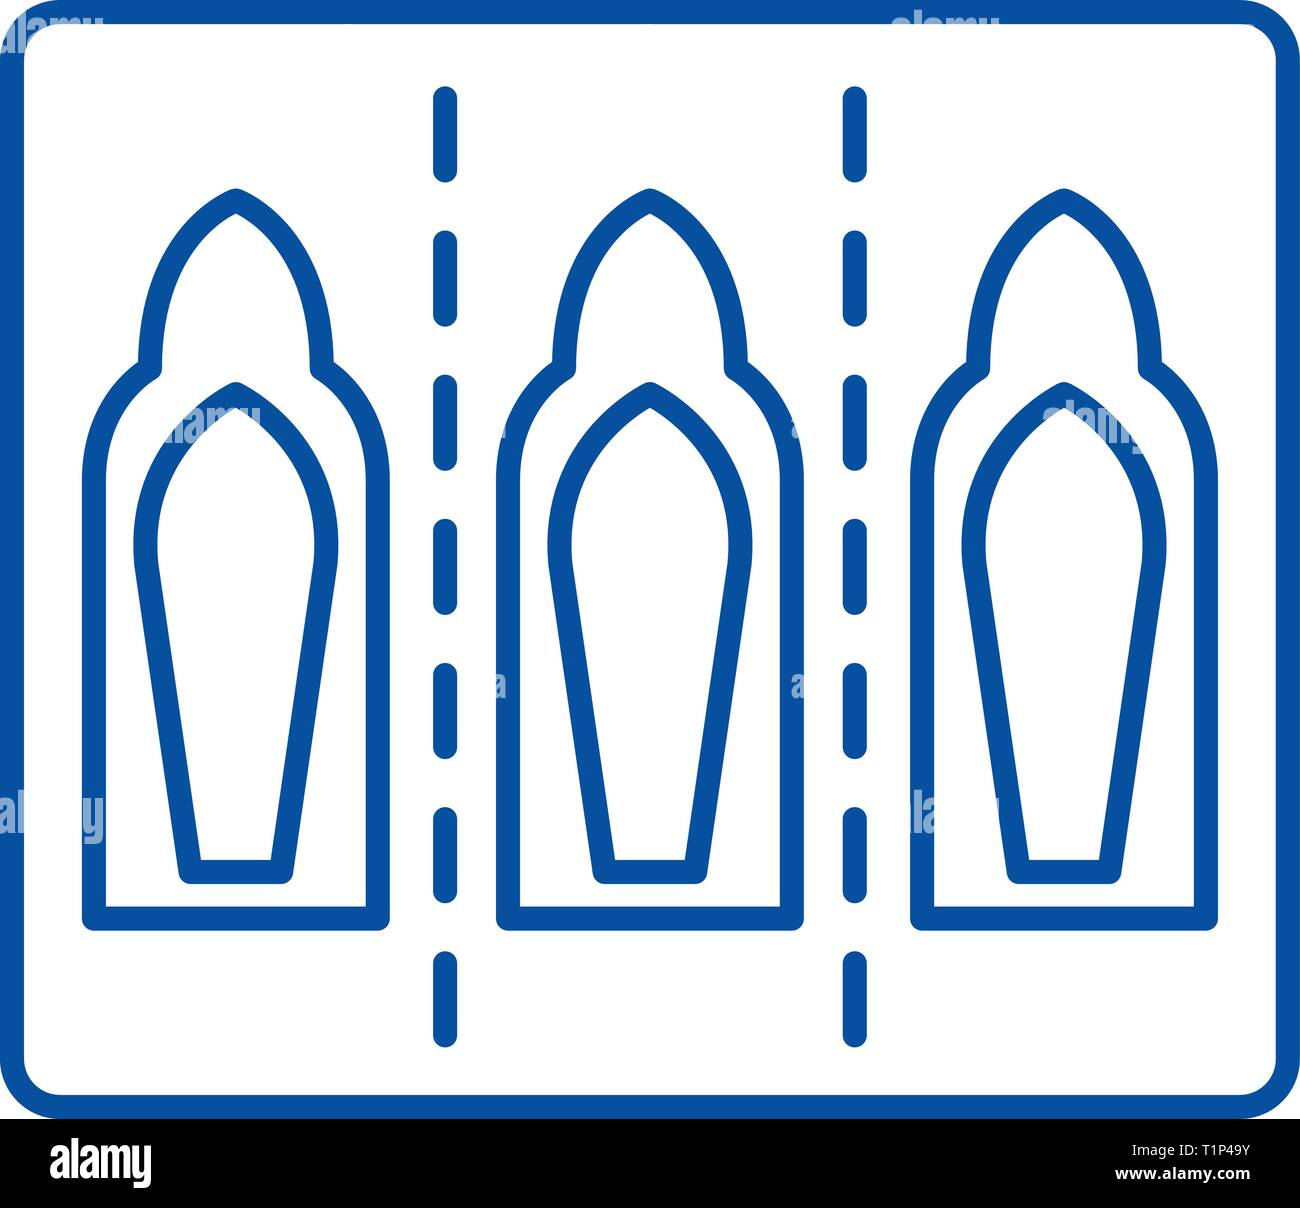 Injection capsules line icon concept. Injection capsules flat  vector symbol, sign, outline illustration. - Stock Vector